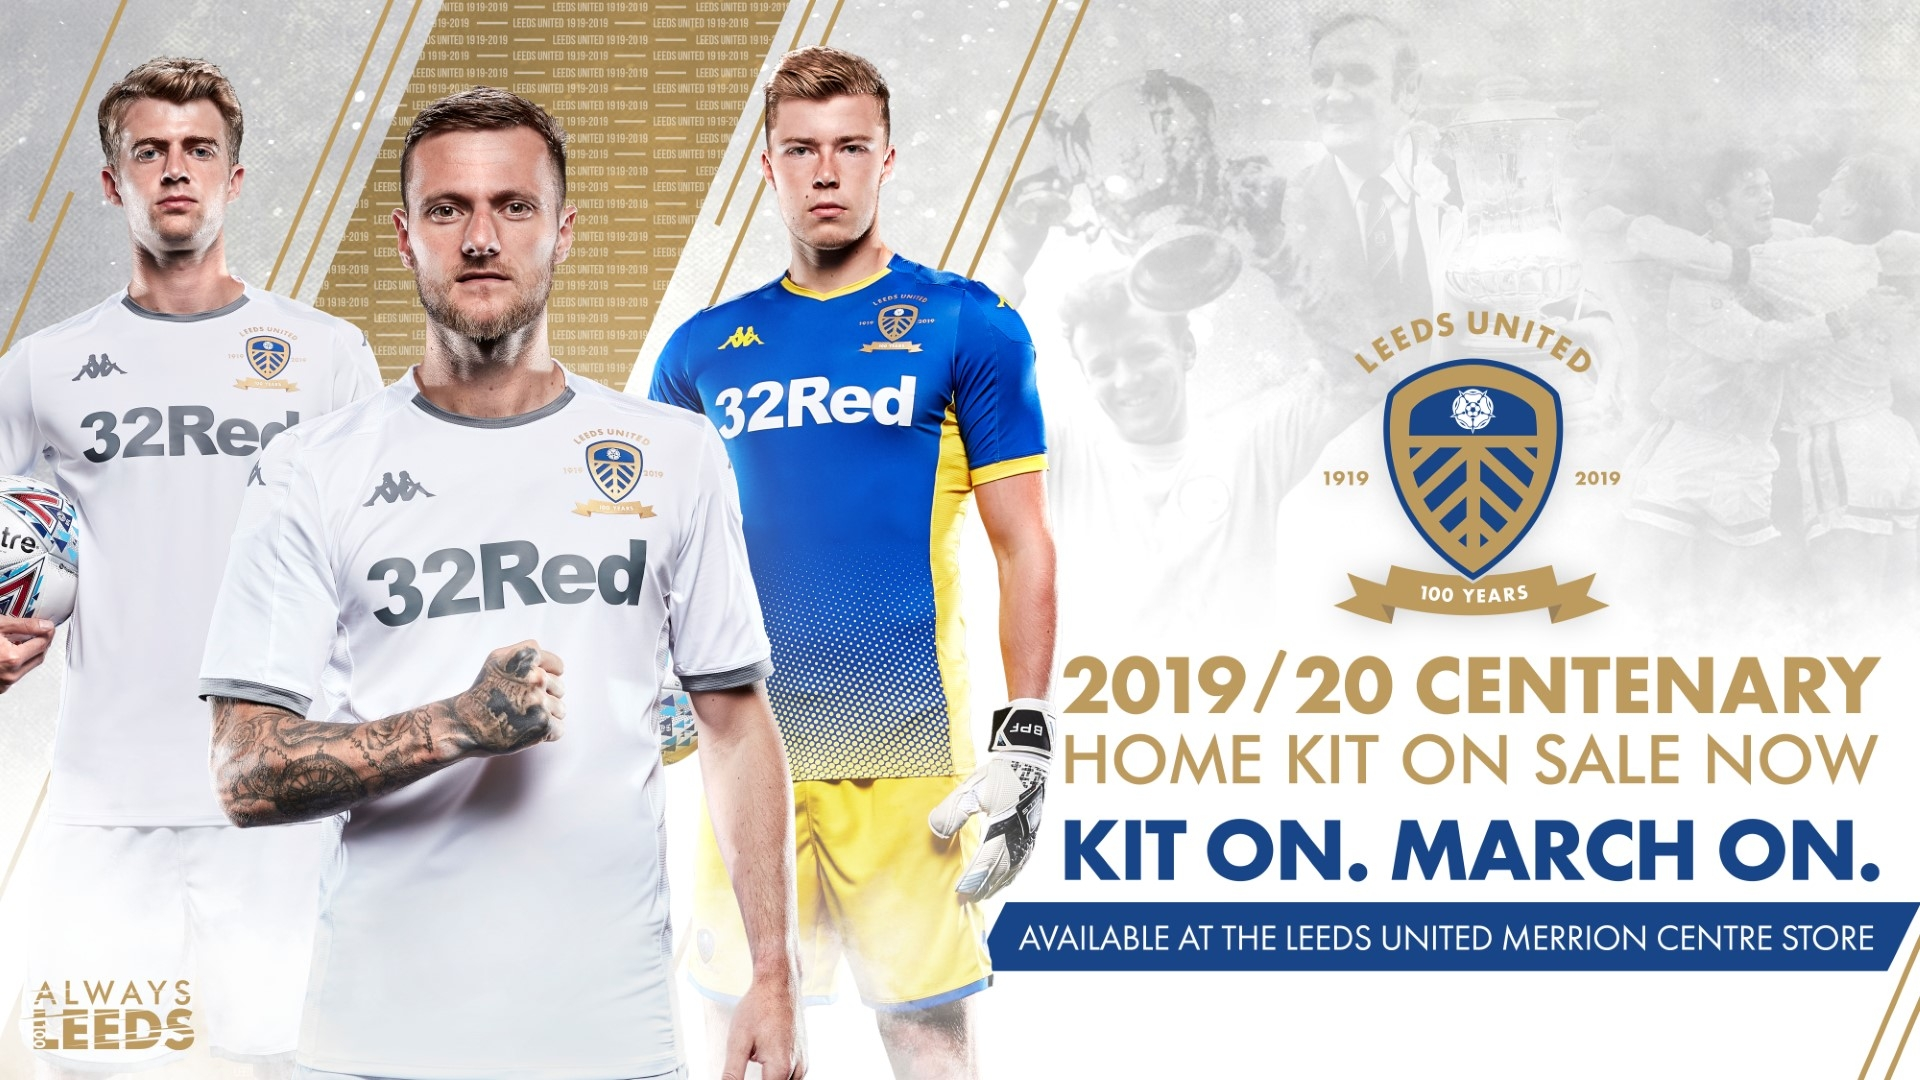 Lufc 2019 20 Centenary Home Kit Launched At The Merrion Centre Merrion Centre